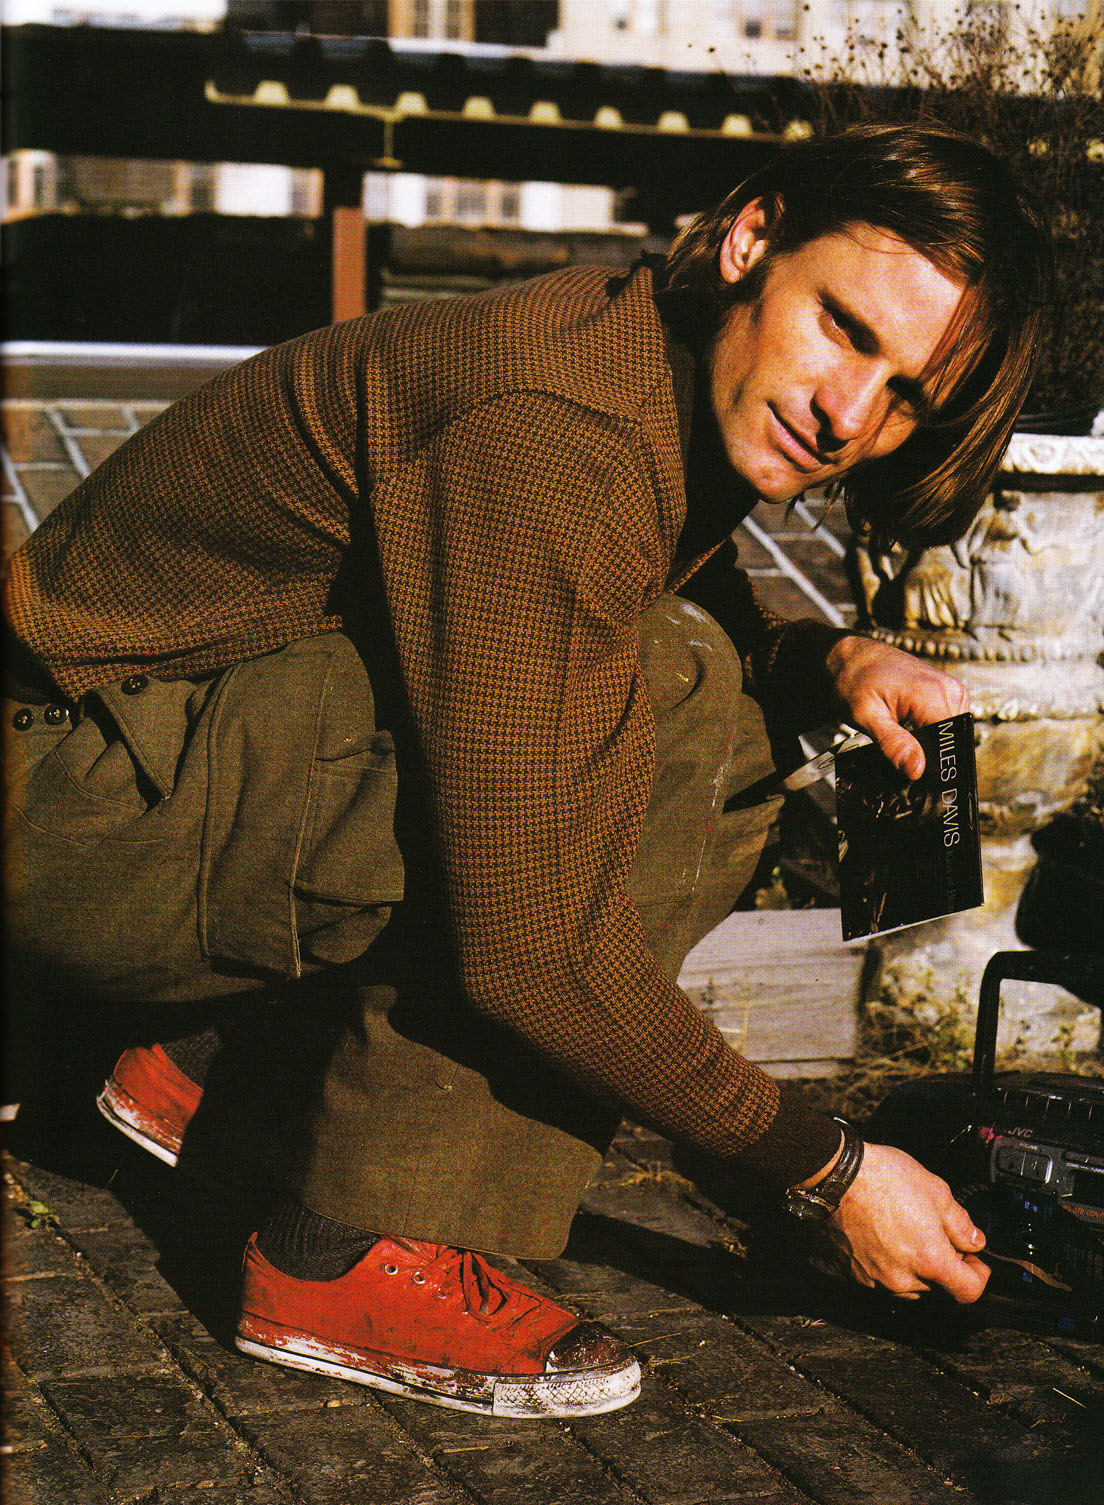 Viggo Mortensen: A Letter To True - Vogue Italia Supplement by Bruce Weber, November 2003